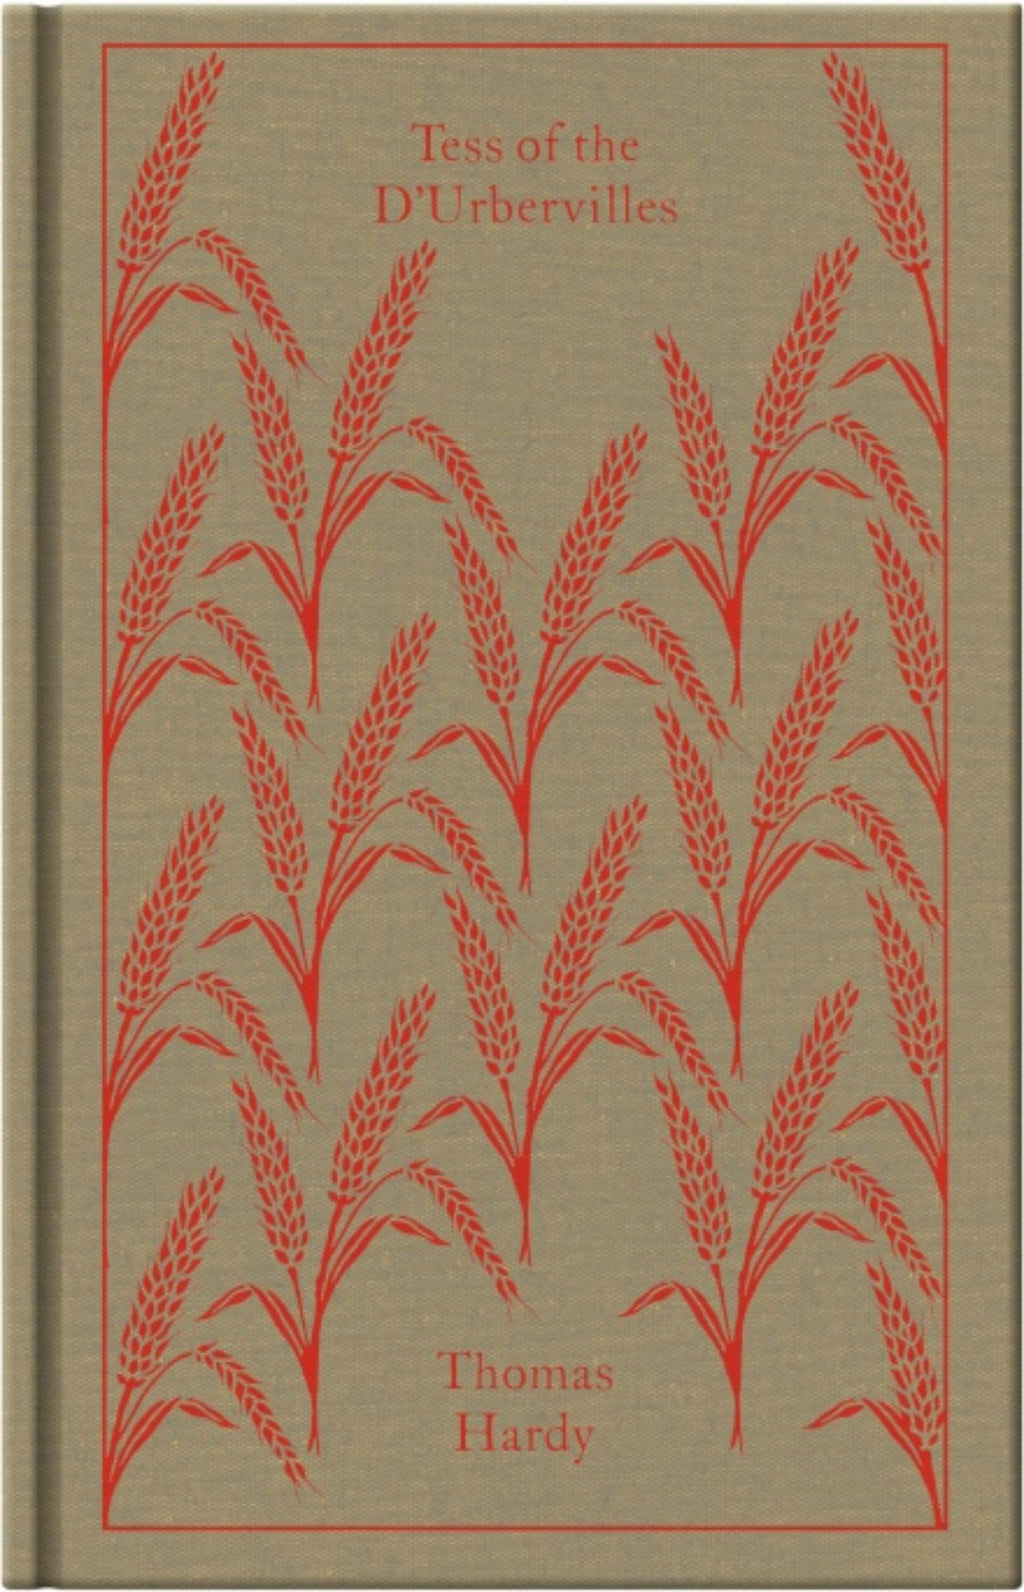 Tess of the D'Urbervilles - Penguin Clothbound Classics